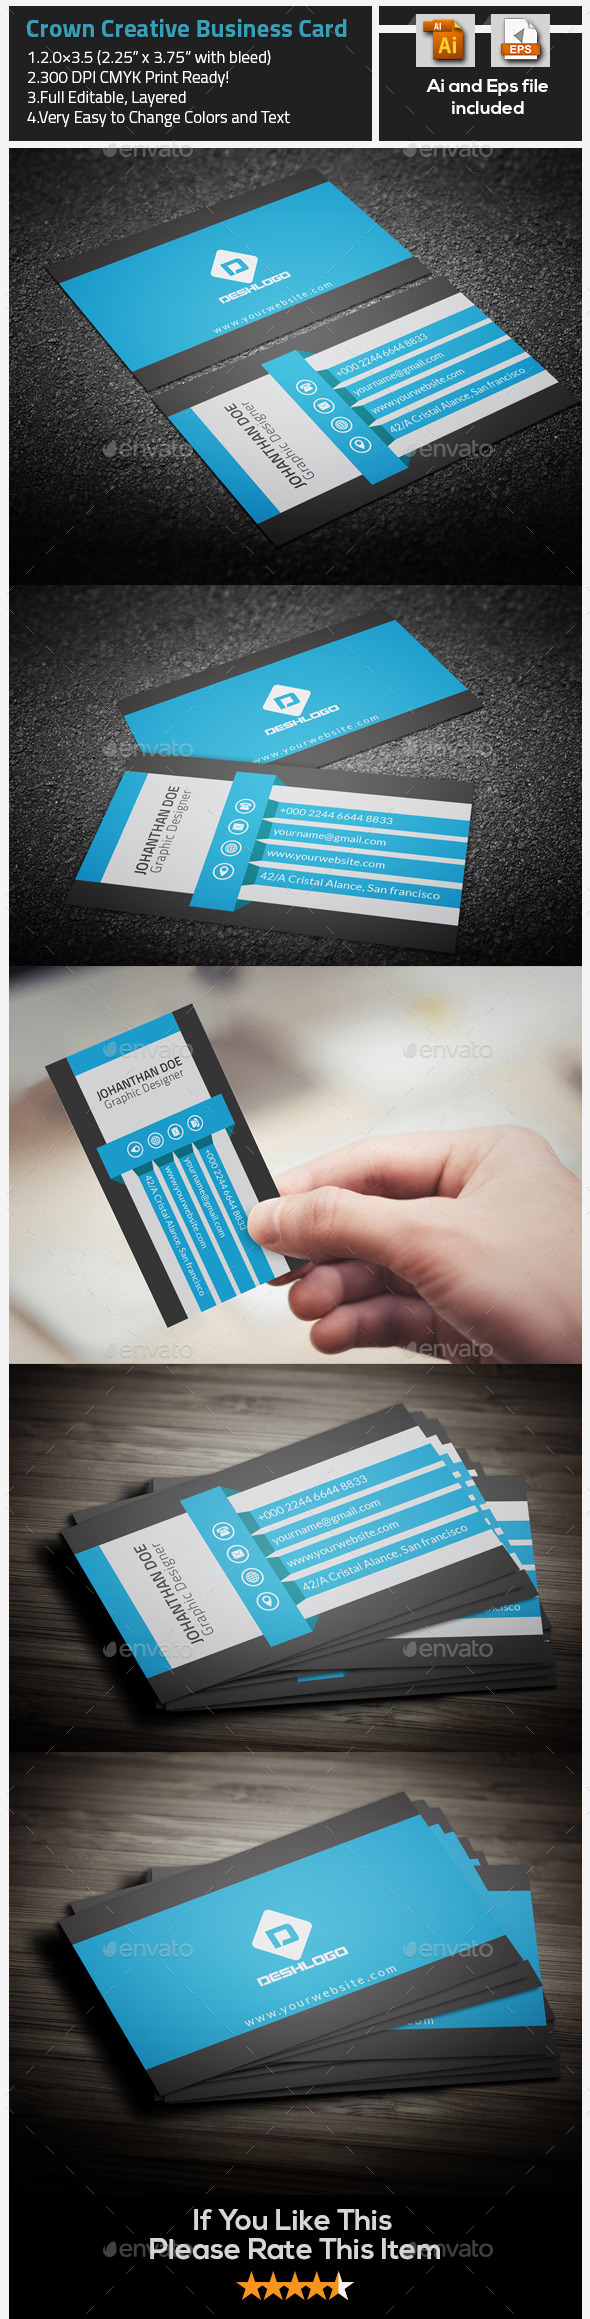 Crown Creative Business Card - Creative Business Cards